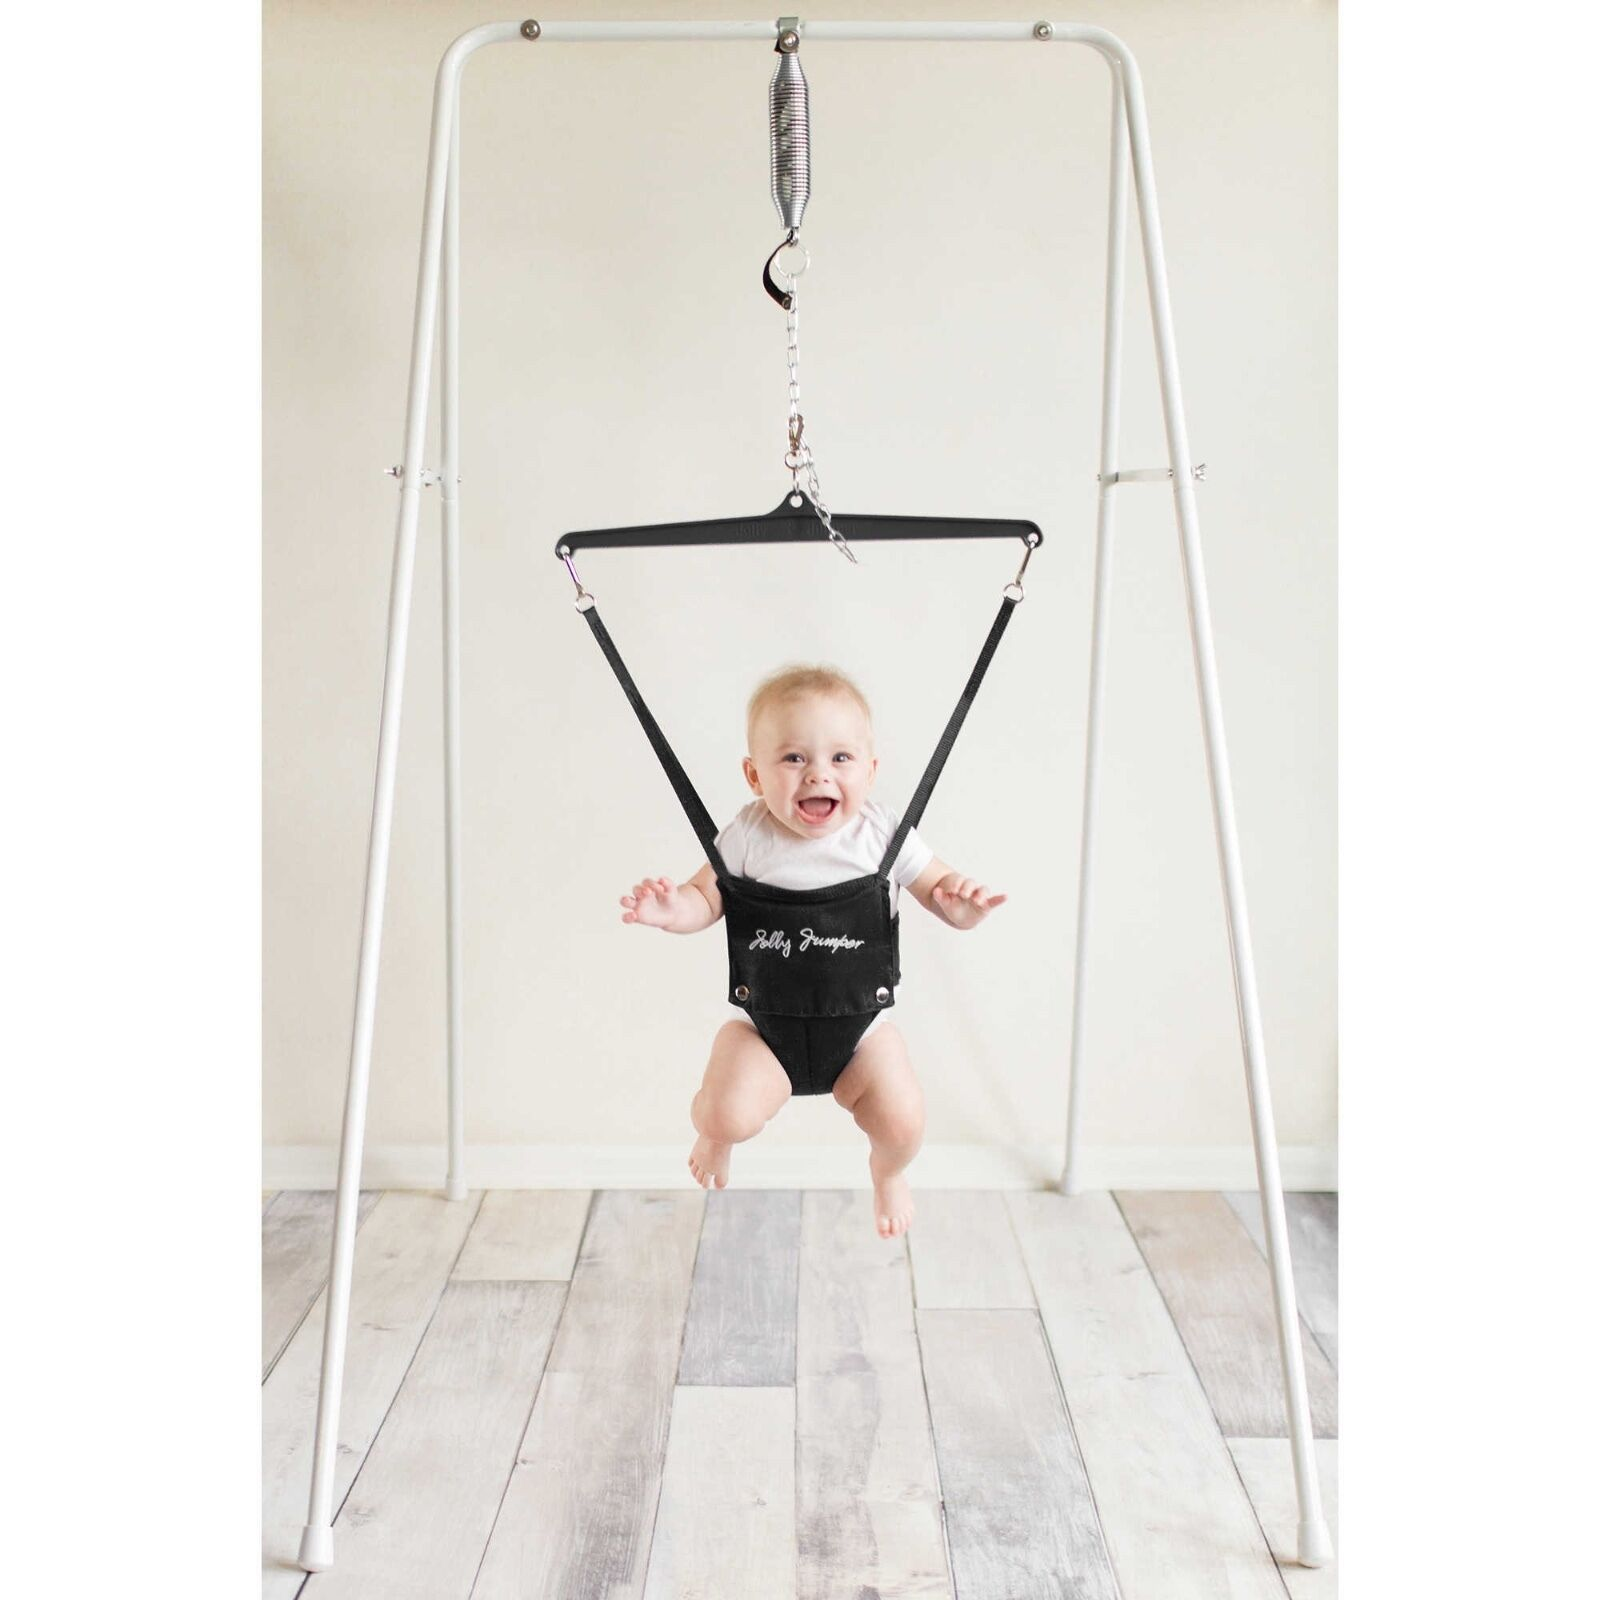 Jolly Jumper Baby Exerciser with Portable Stand in White | eBay